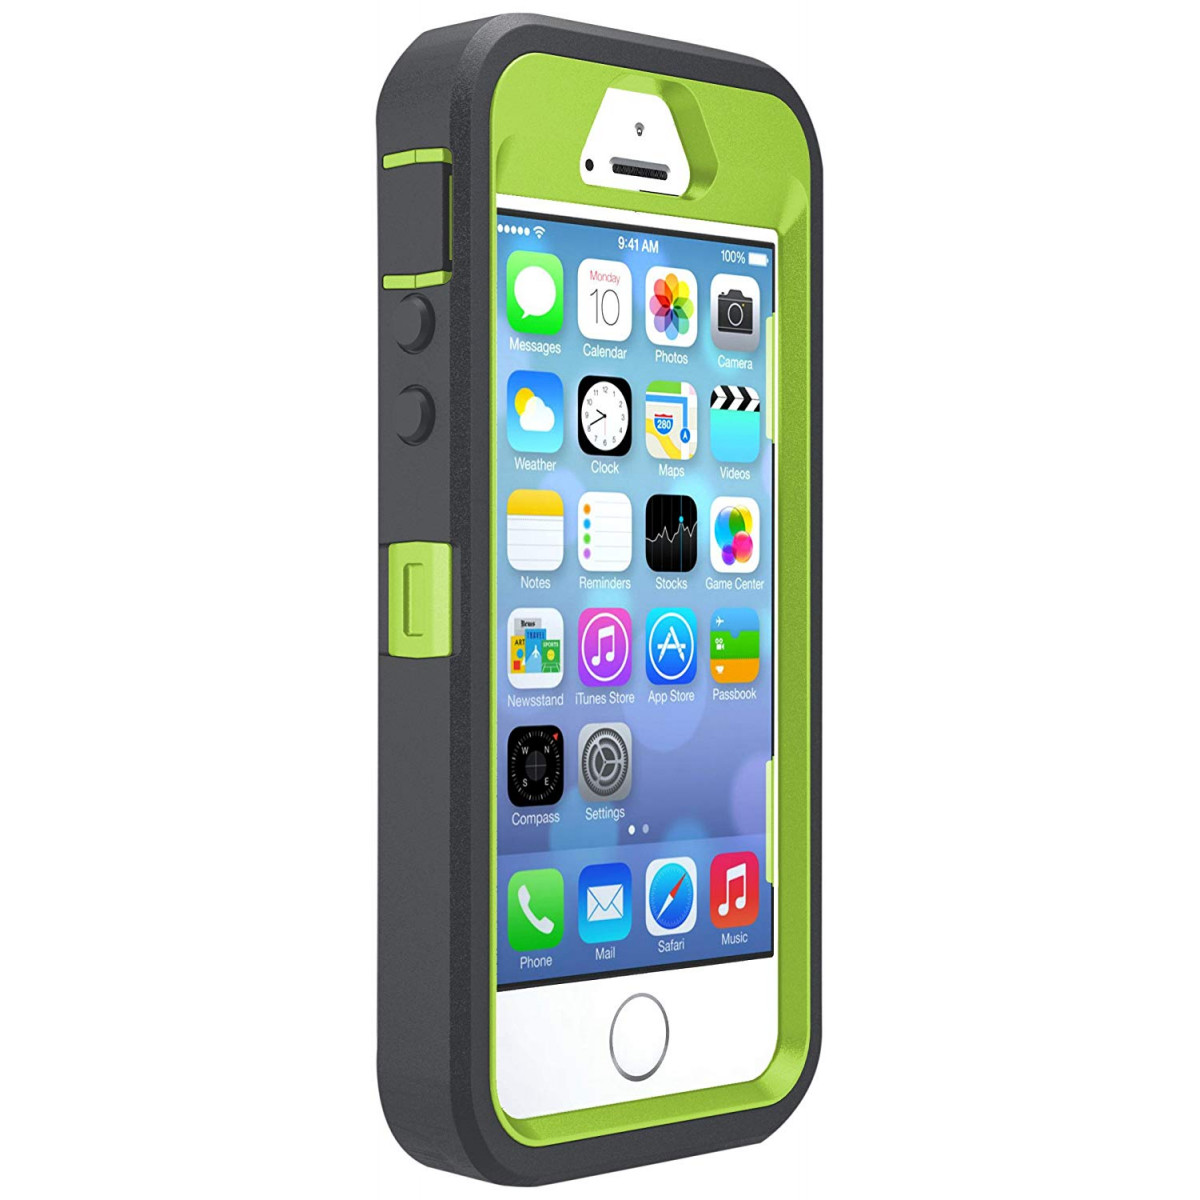 new concept 59663 9a760 OtterBox DEFENDER SERIES Case for iPhone 5/5s/SE - Frustration Free  Packaging - KEY LIME (GLOW GREEN/SLATE GREY)